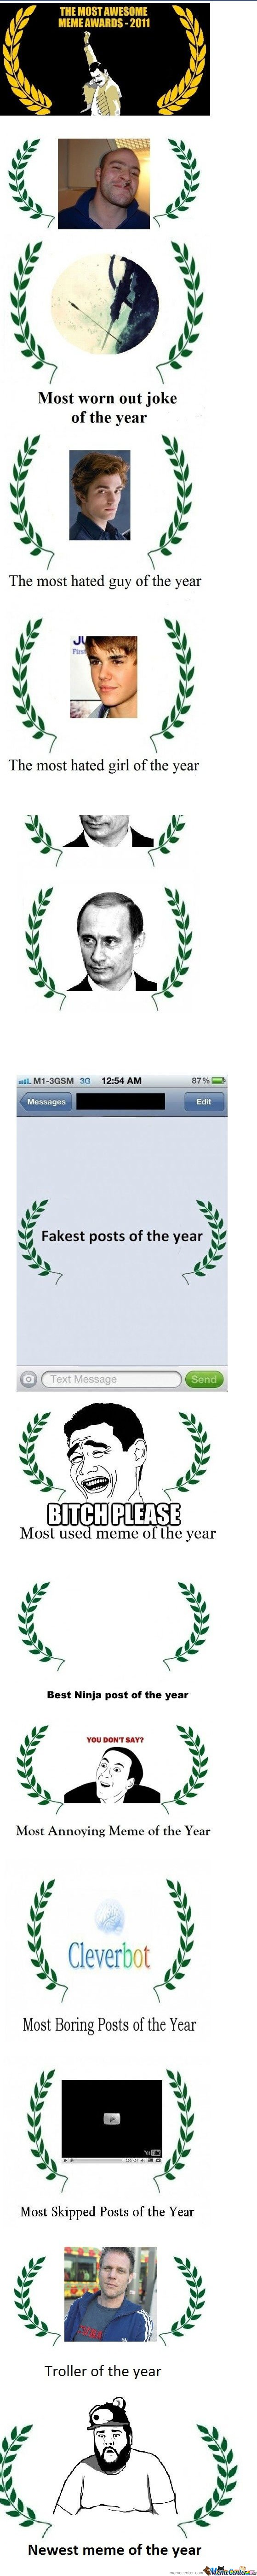 The Most Awesome Meme Awards - 2011